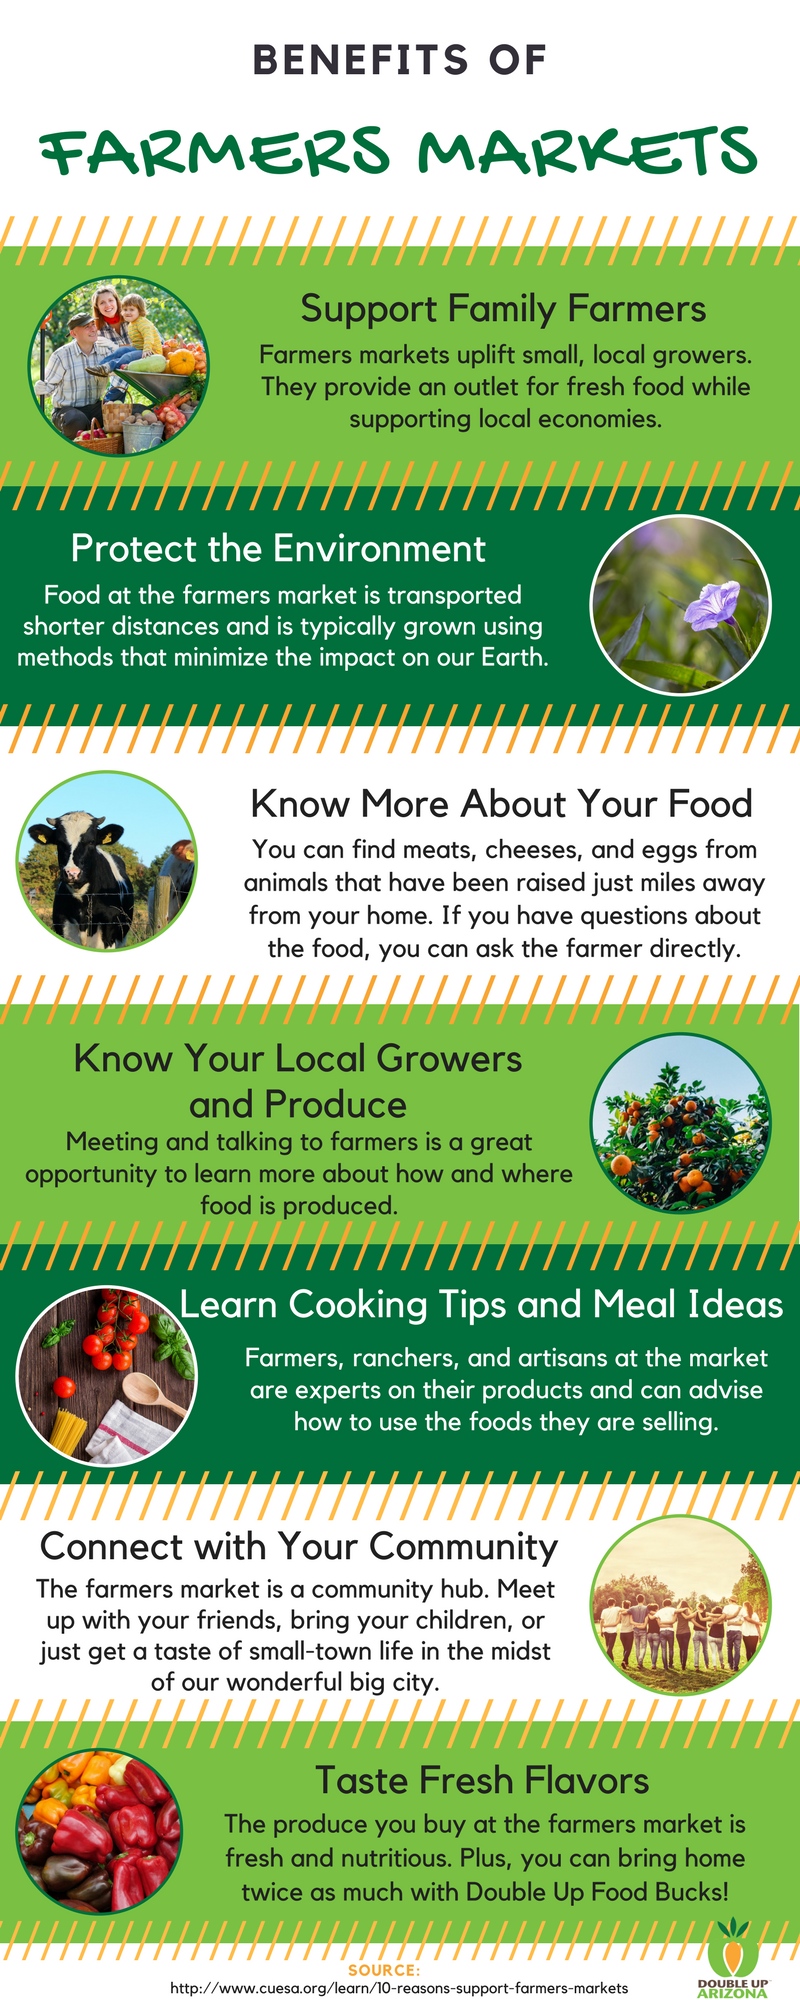 benefits-of-farmers-markets_orig.png